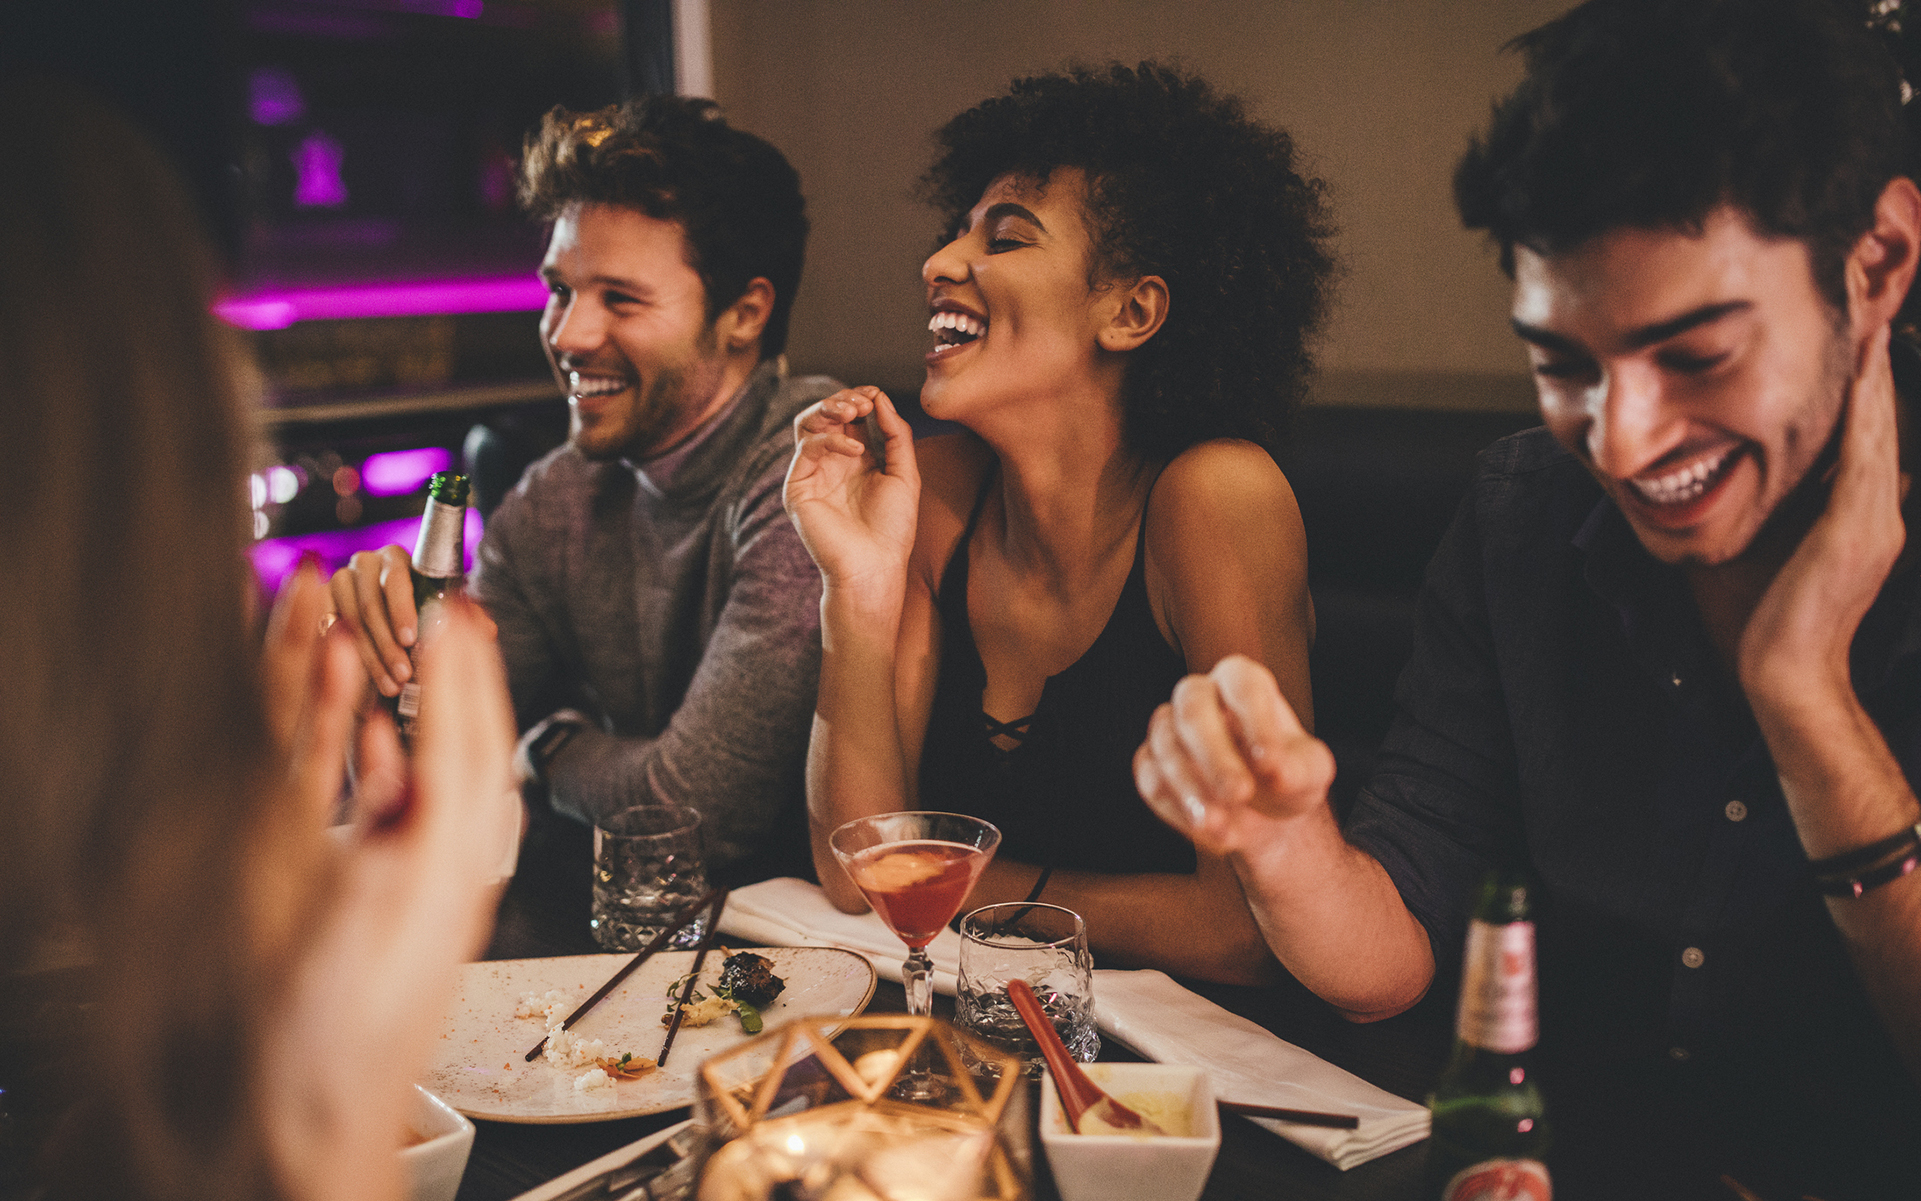 The 13 Best Cannabis Strains for Parties